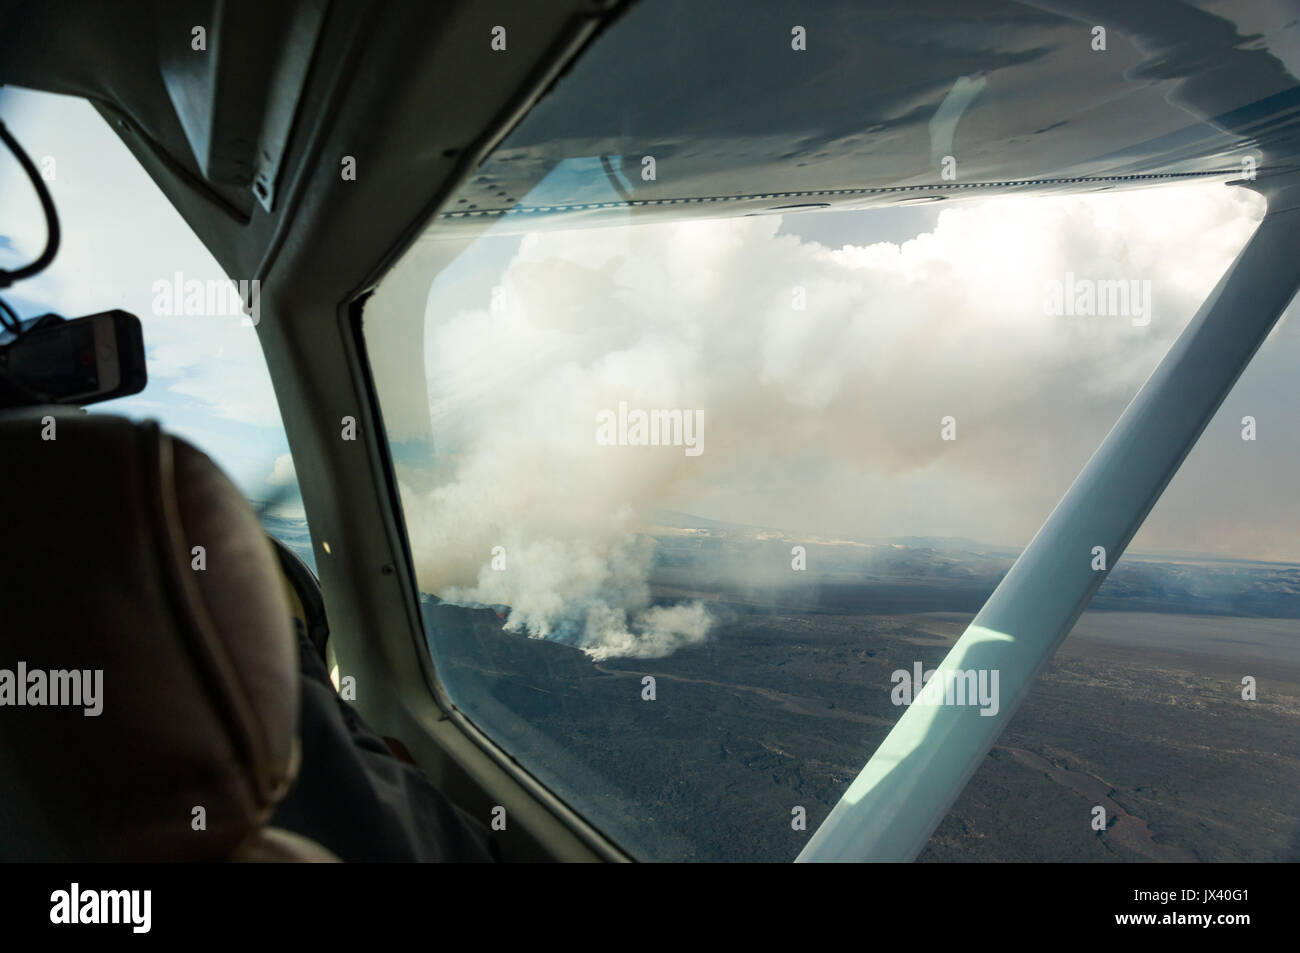 Aerial view from plane interior of Bárðarbunga Holuhraun volcano caldera lava flow in Iceland, October 2014 - Stock Image